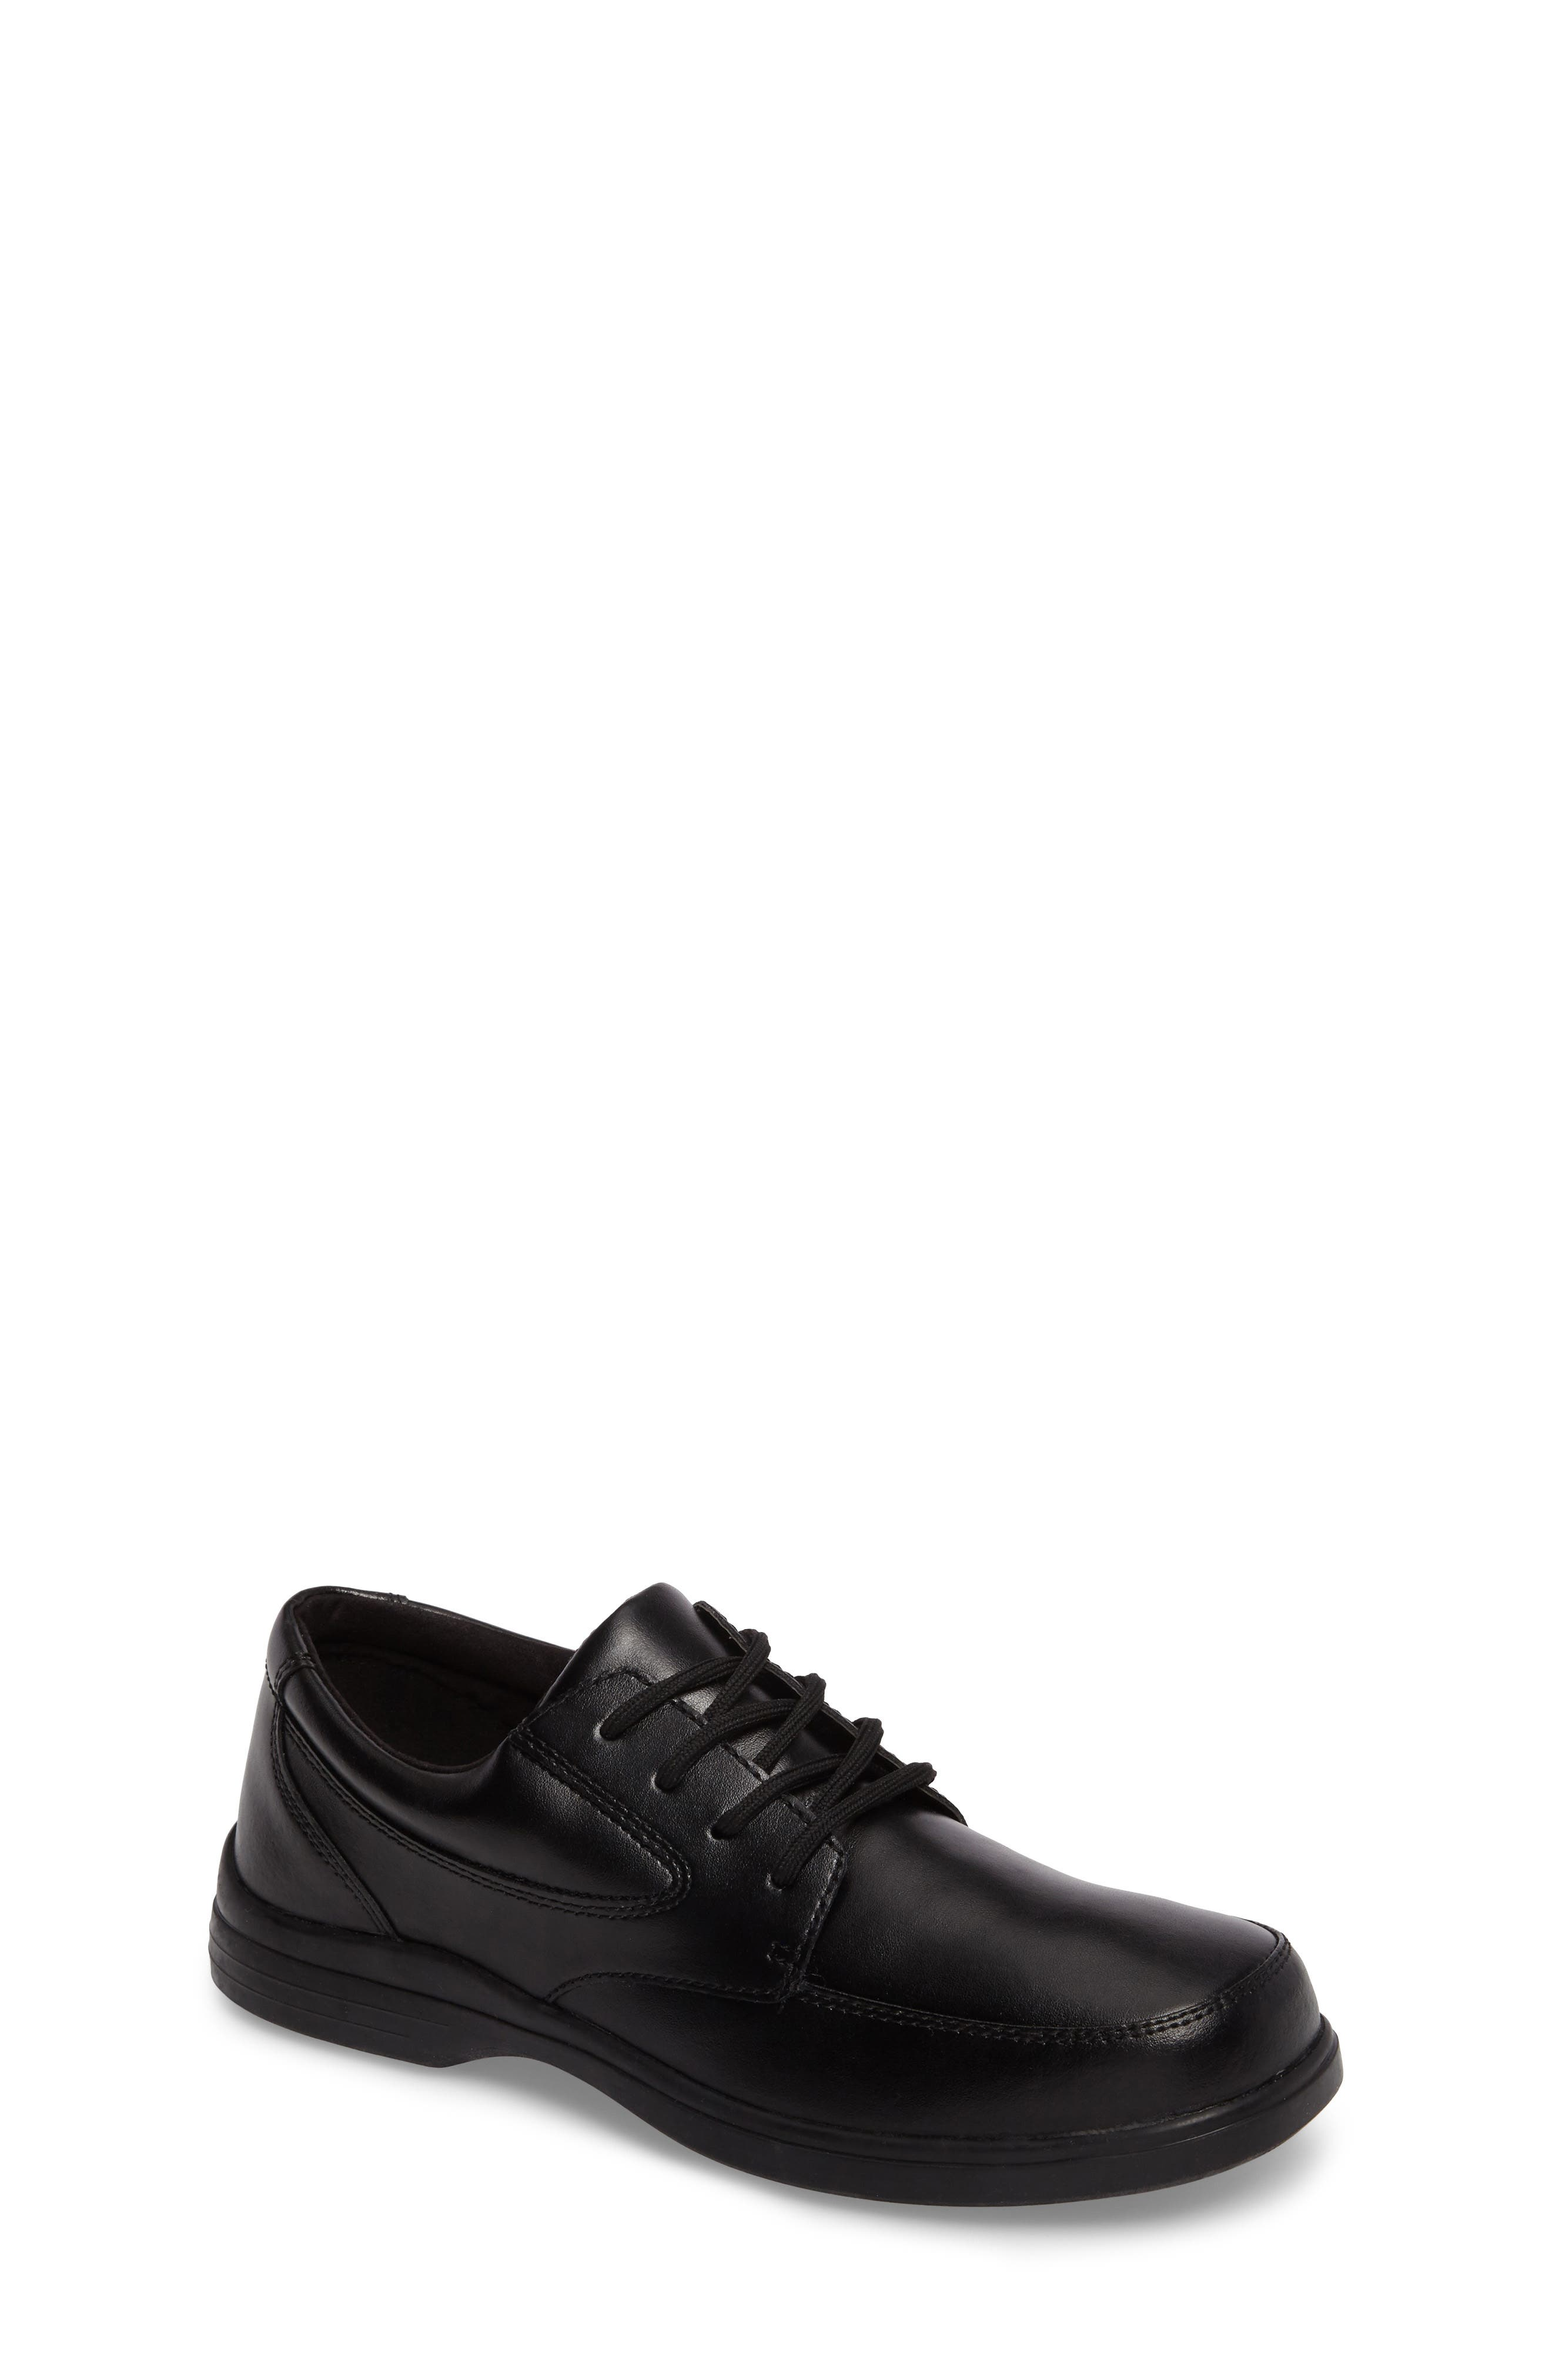 Ty Dress Shoe,                             Main thumbnail 1, color,                             Black Leather